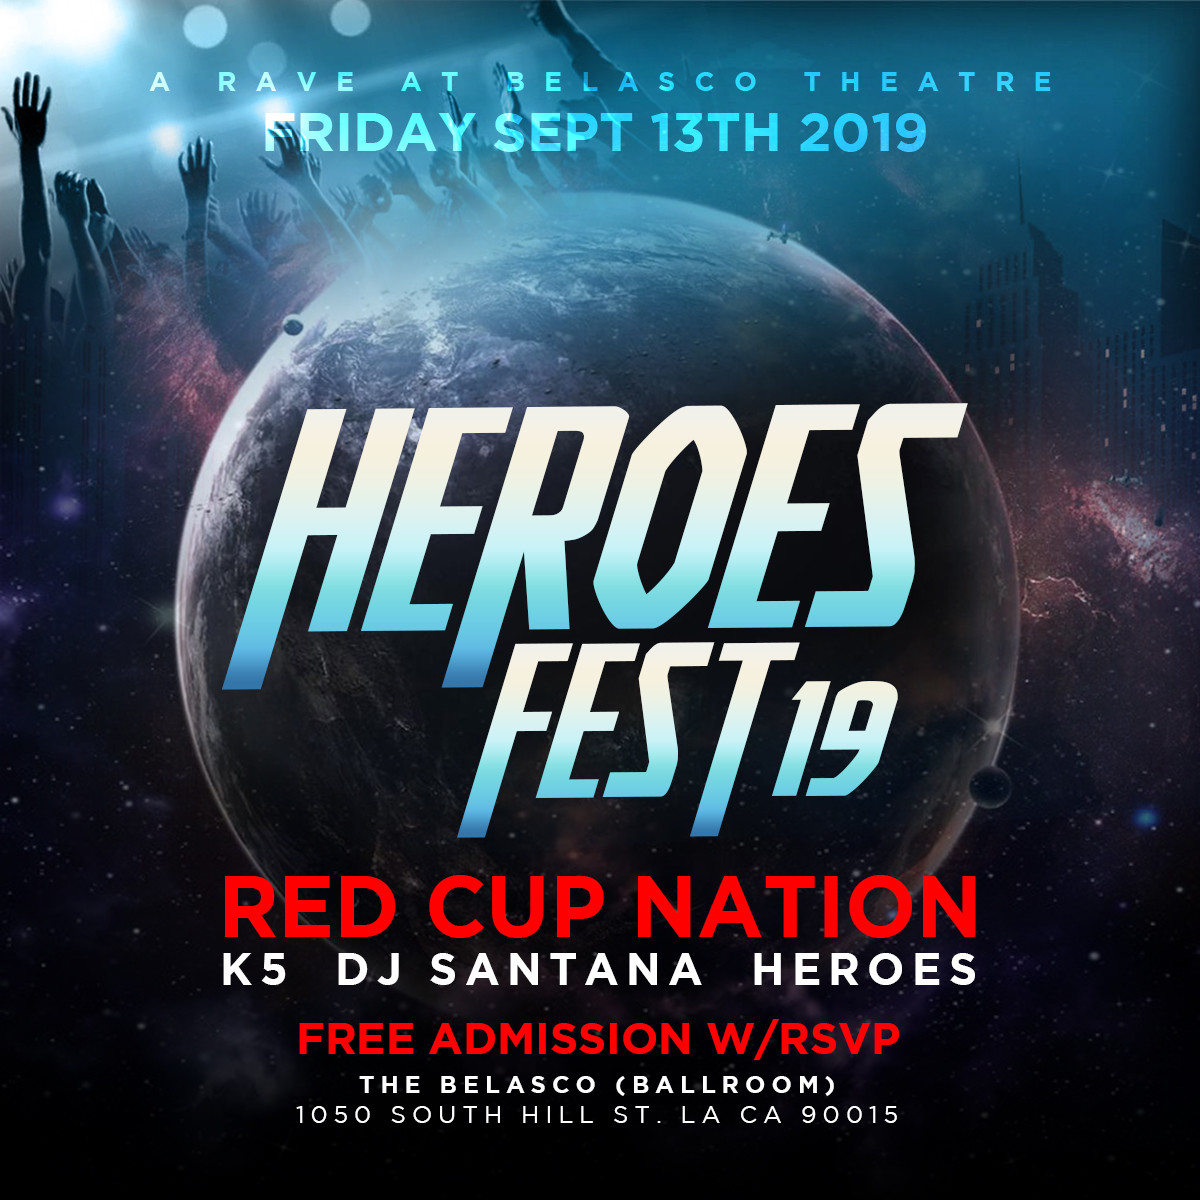 Heroes Fest '19 to Bring All-Star Lineup to the Belasco Theater this Weekend